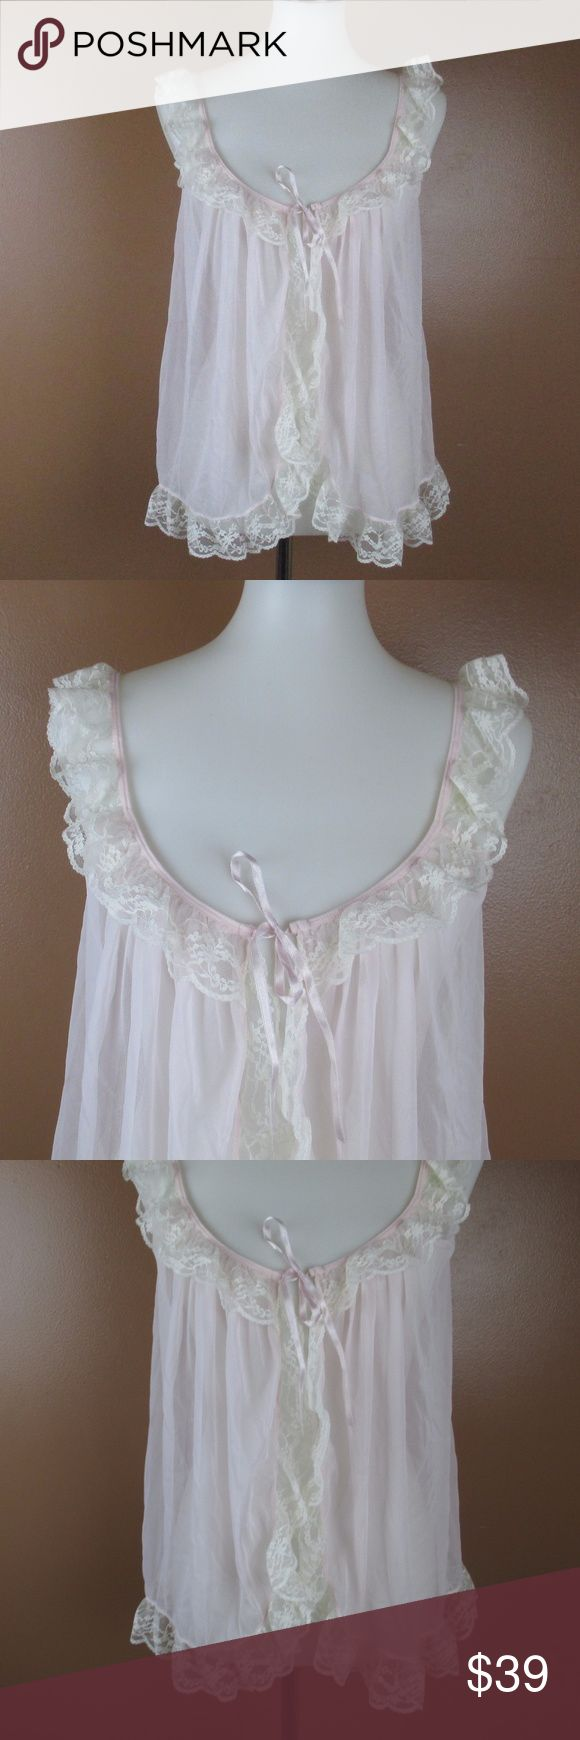 NWOT Victoria's Secret Chemise Small Lace Pink Victoria's Secret lingerie chemise night gown New without tags Sheer with lace trimming The center is open and it ties at the top Pink and creme color This is a small but will definitely fit a medium since its an open style chemise Length from should to bottom lace trimming is 25 inches  OFFERS ACCEPTED  Add to a bundle for an automatic discount   Colors may very due to lighting, seller does its best to portray the right color. Please inspect…